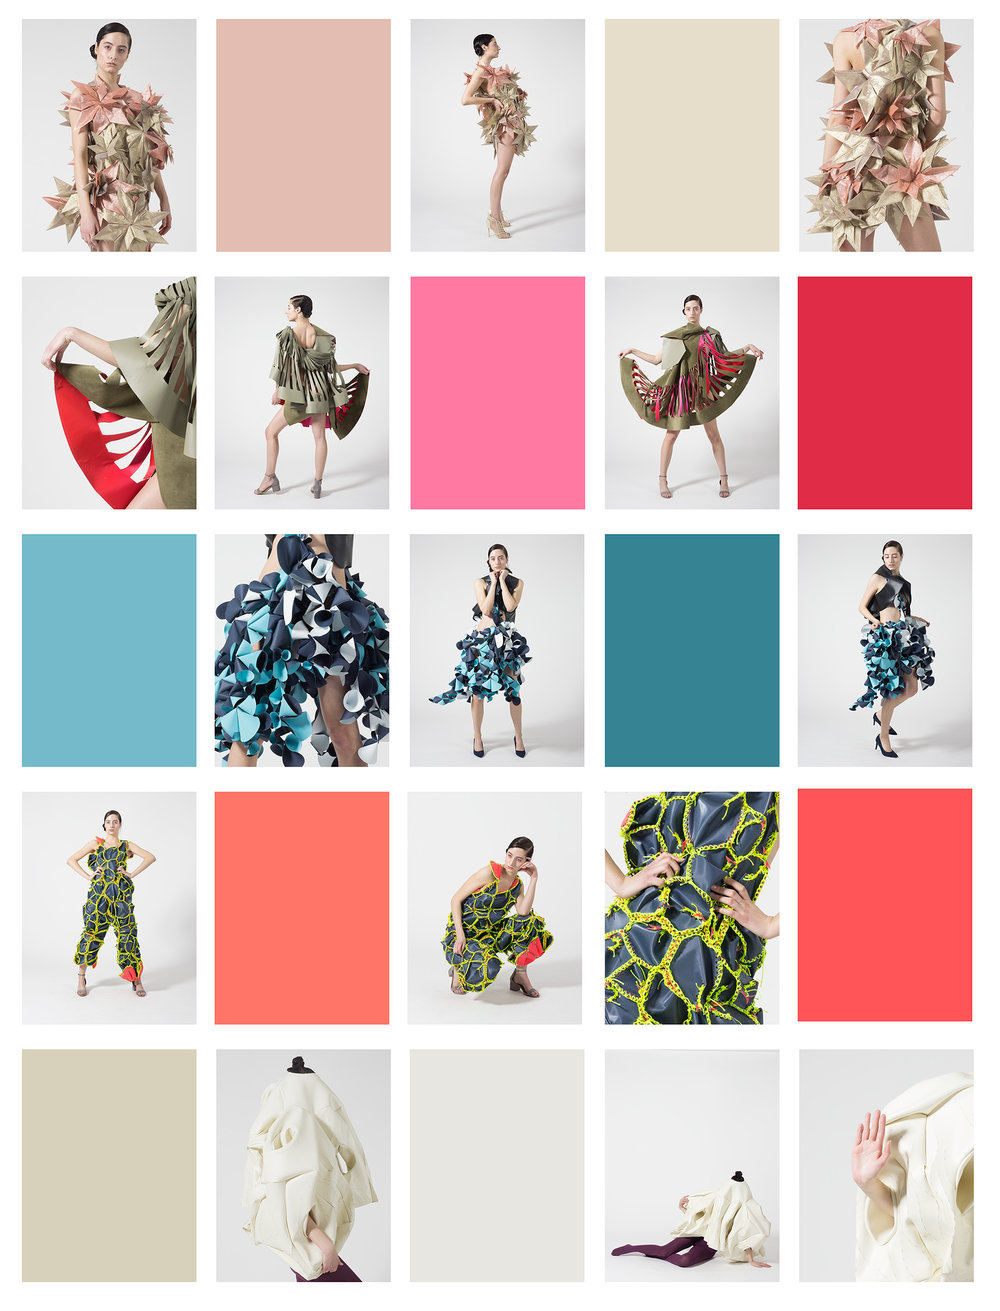 Designers (top to bottom): Sophie Zhou, Yafei Shen, Meiru Cai (skirt) + Carley Brandau (top), Carley Brandau, Yuanyu Xiong  lookbook concept color swatch book